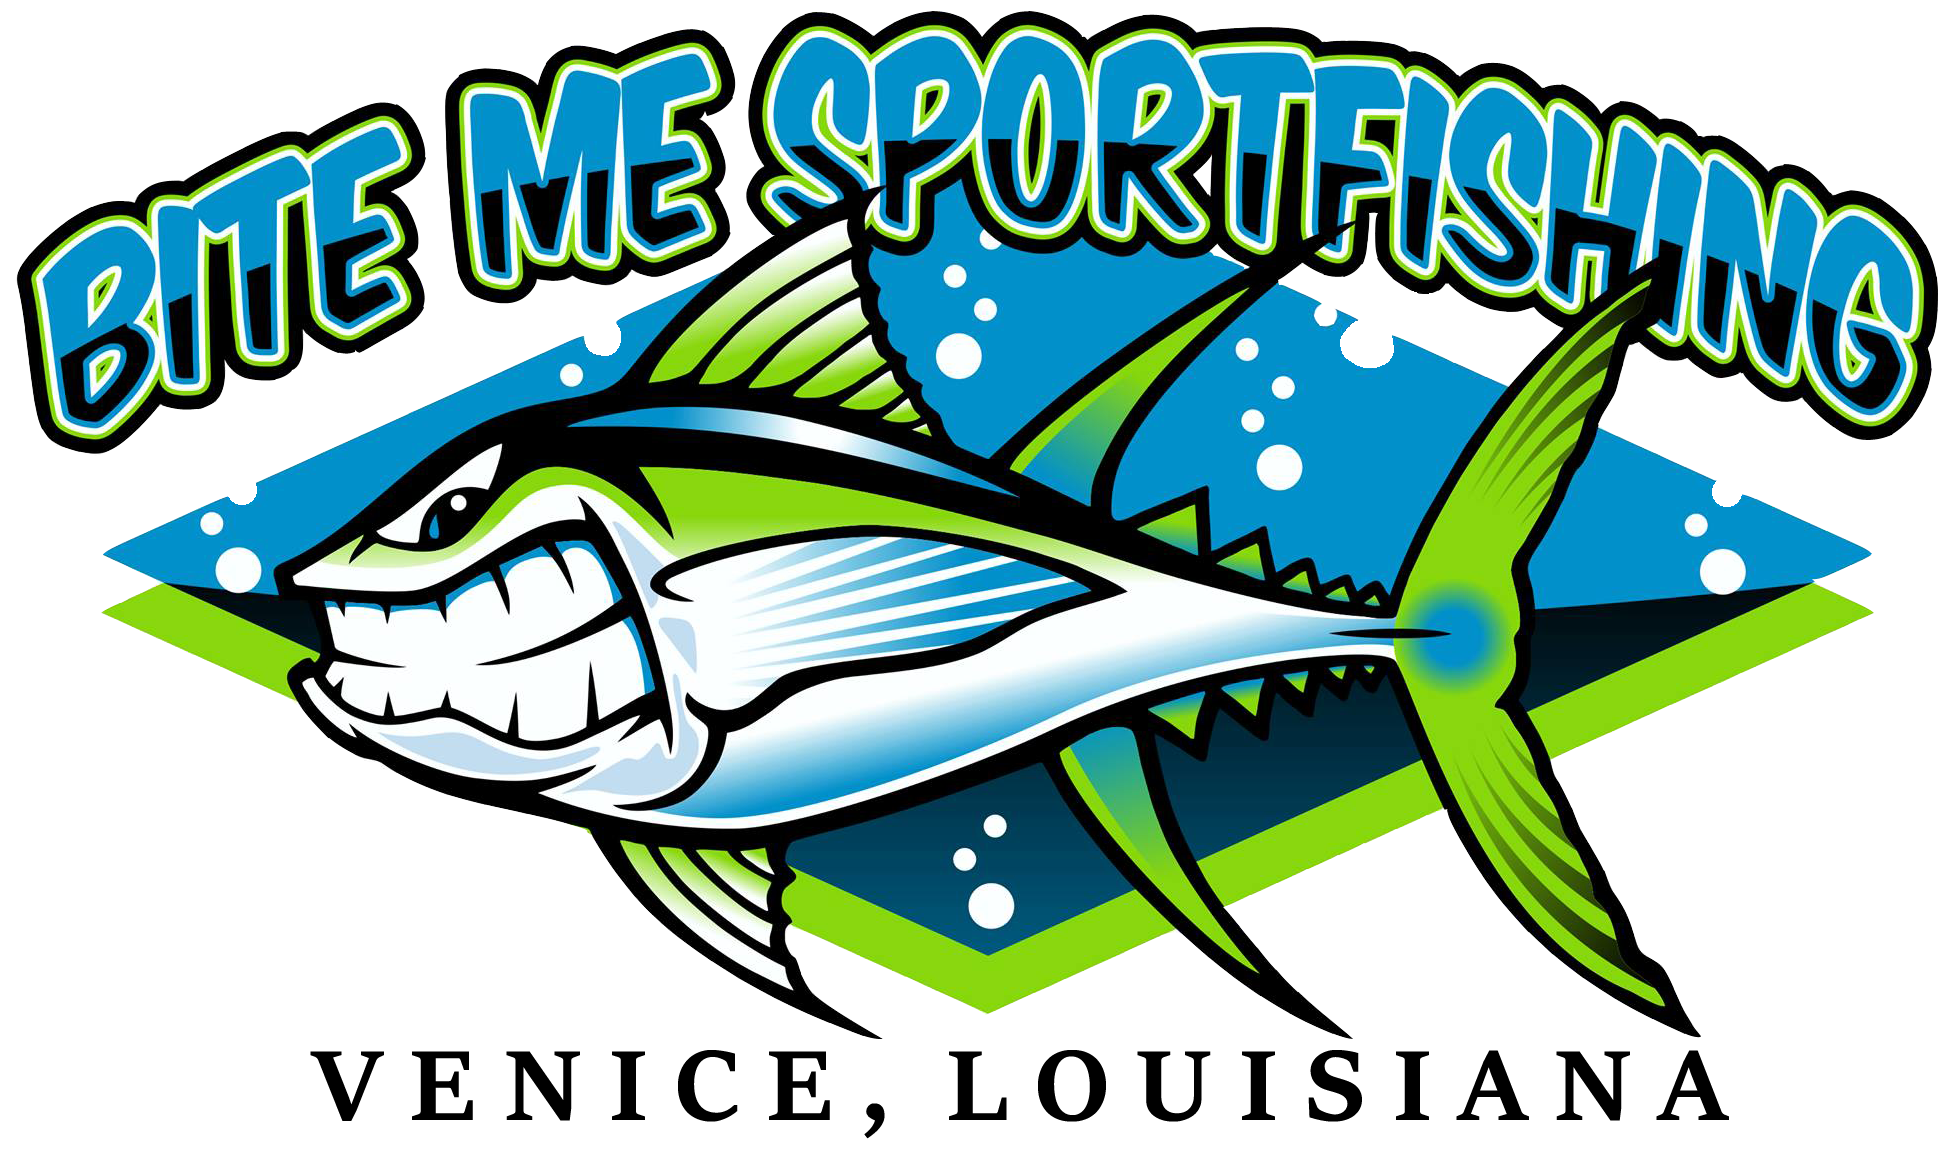 Bite me sportfishing venice. Tuna clipart yellowfin tuna